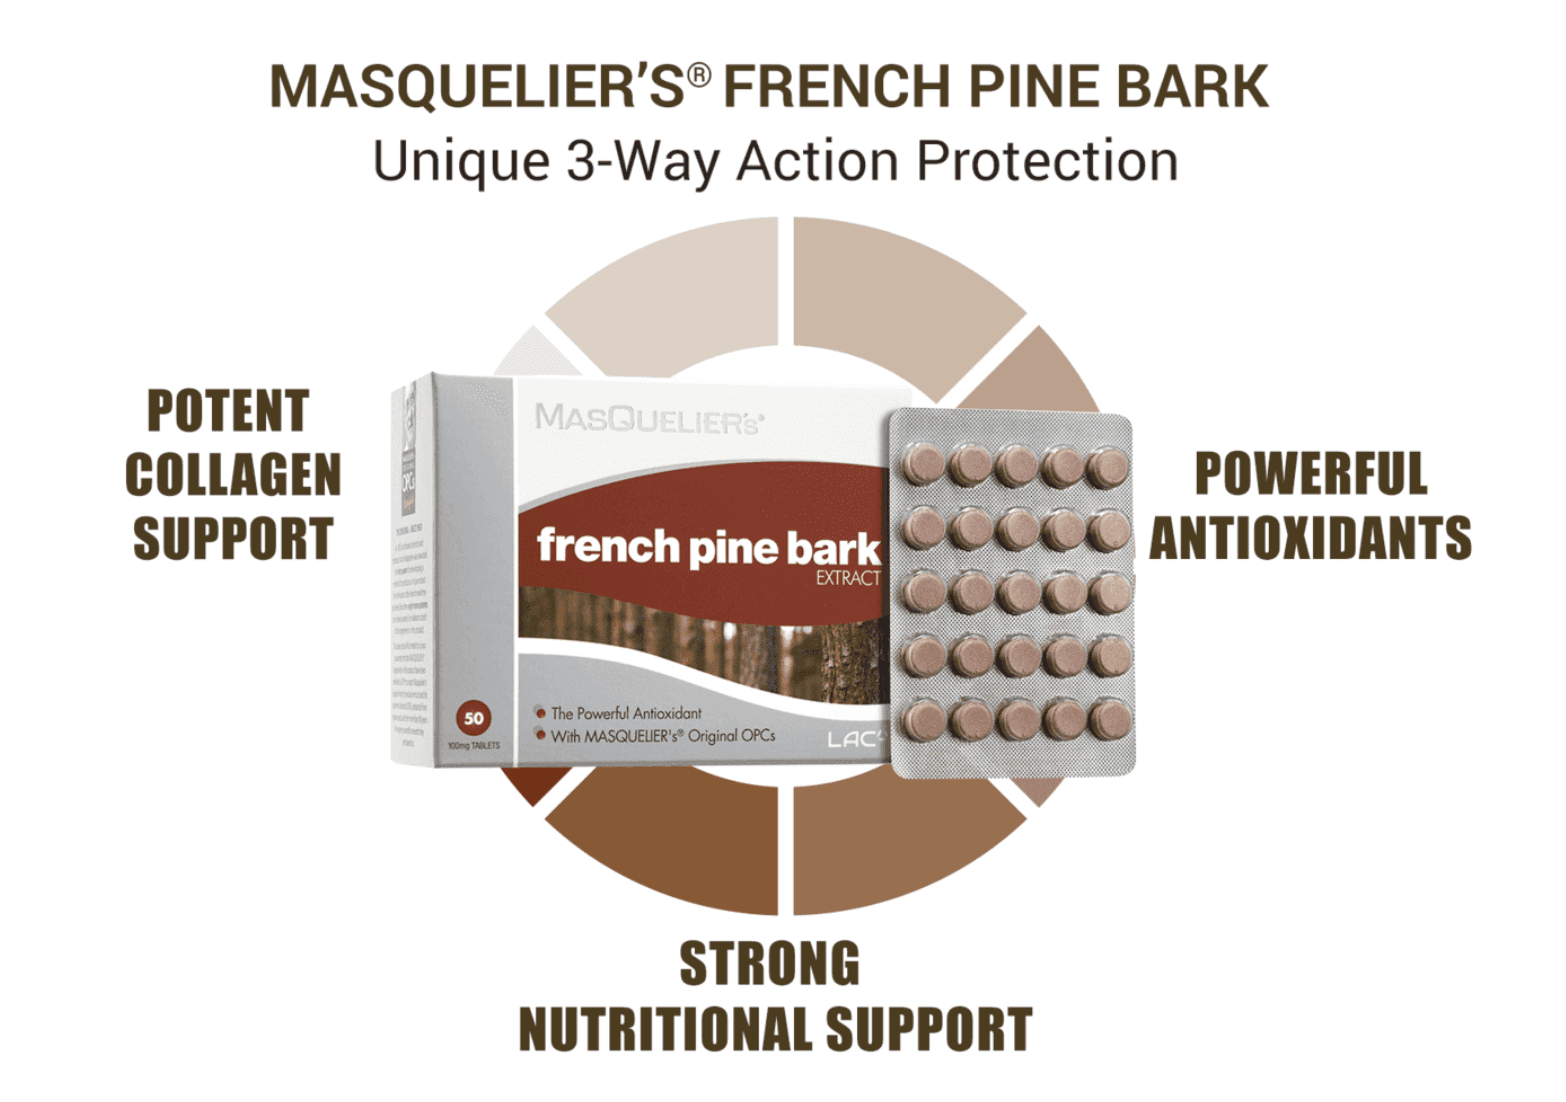 MASQUELIER's French Pine Bark Extract